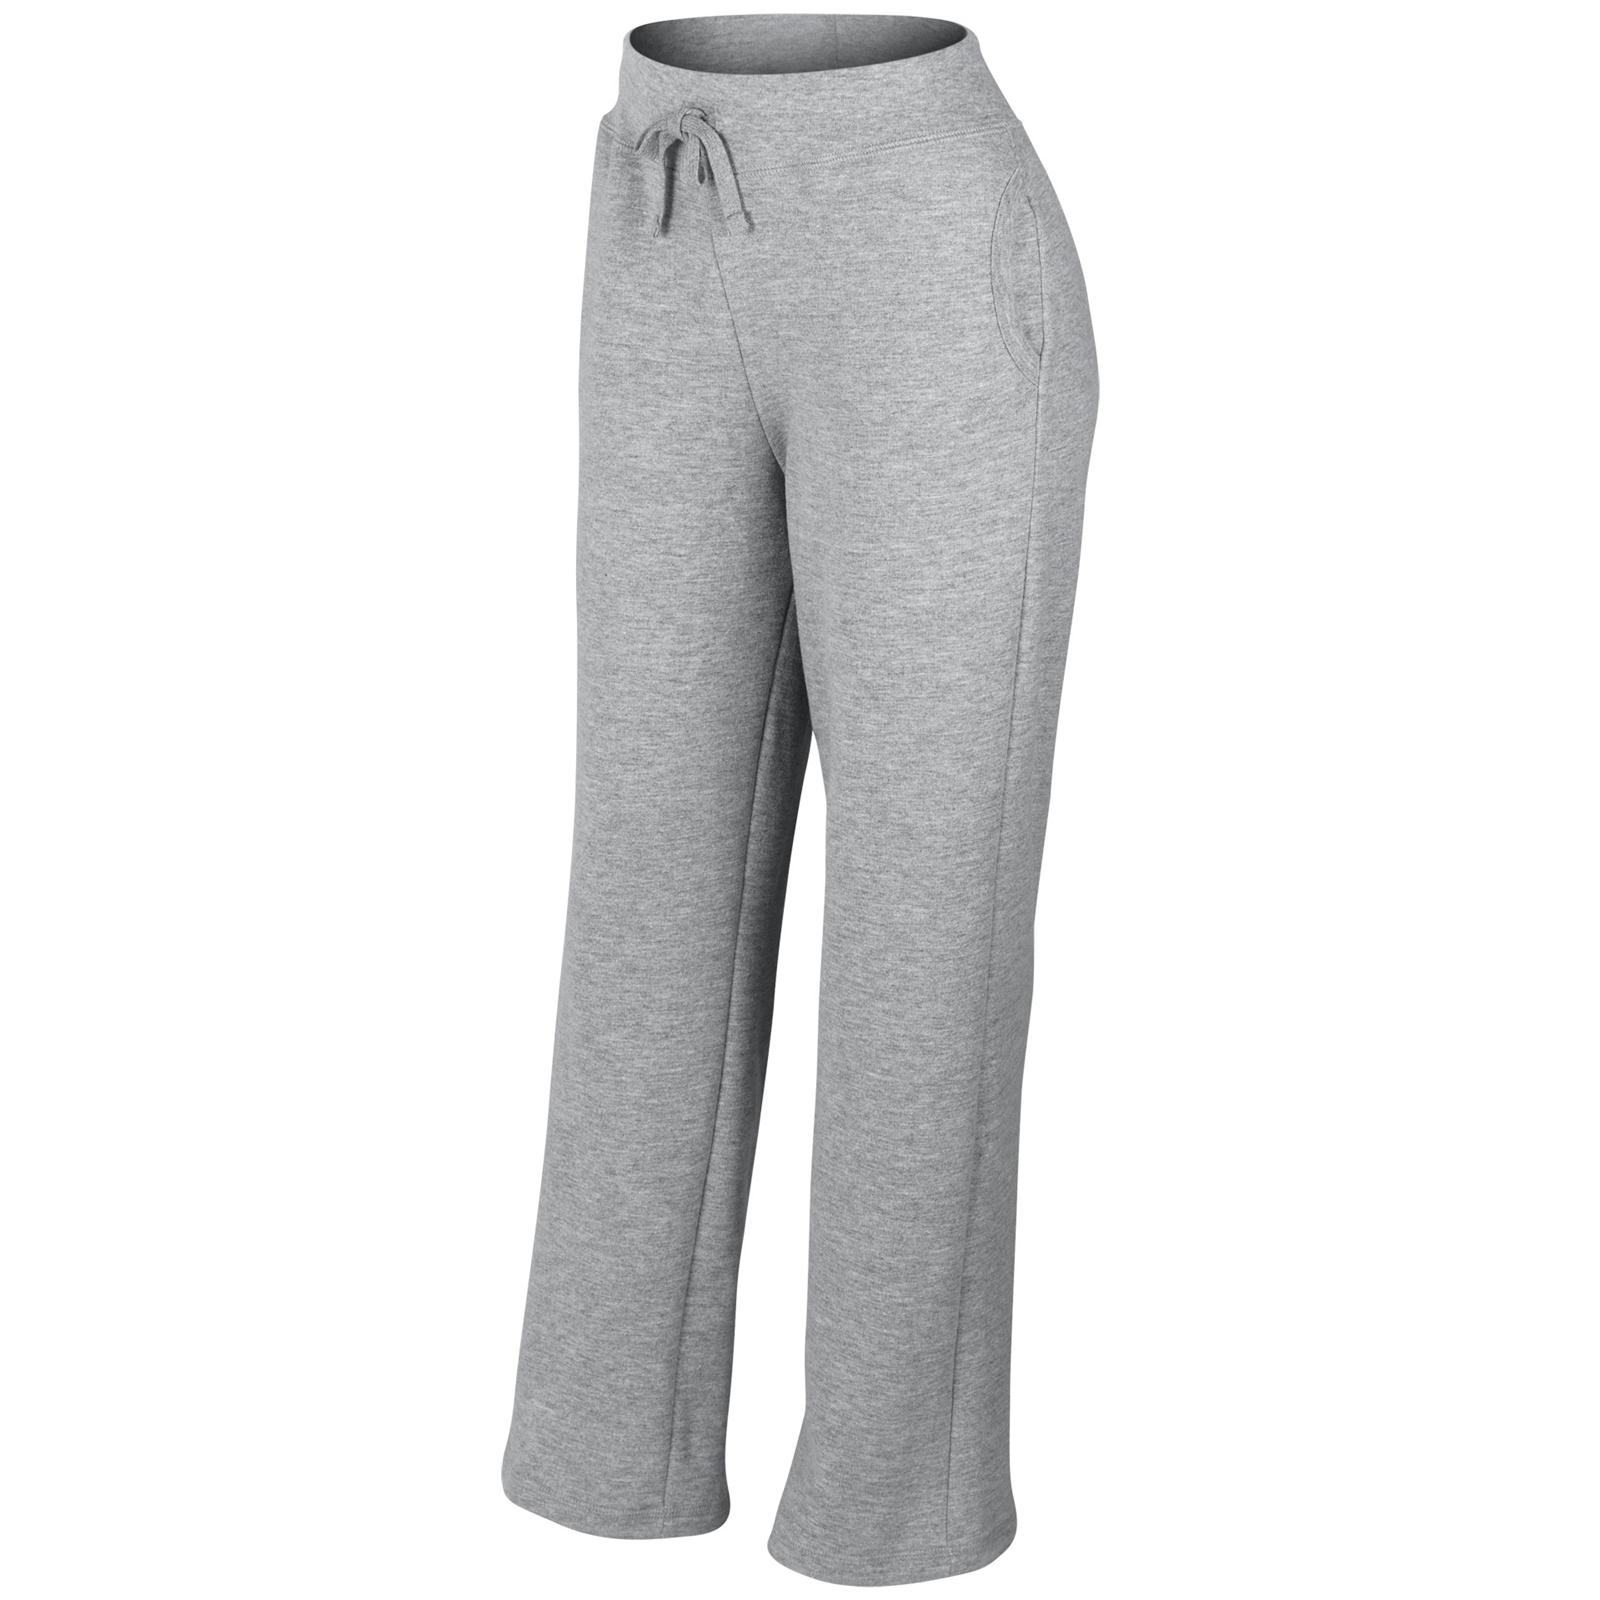 Perfect Nike Women39s Gray Gym Vintage Sweatpants